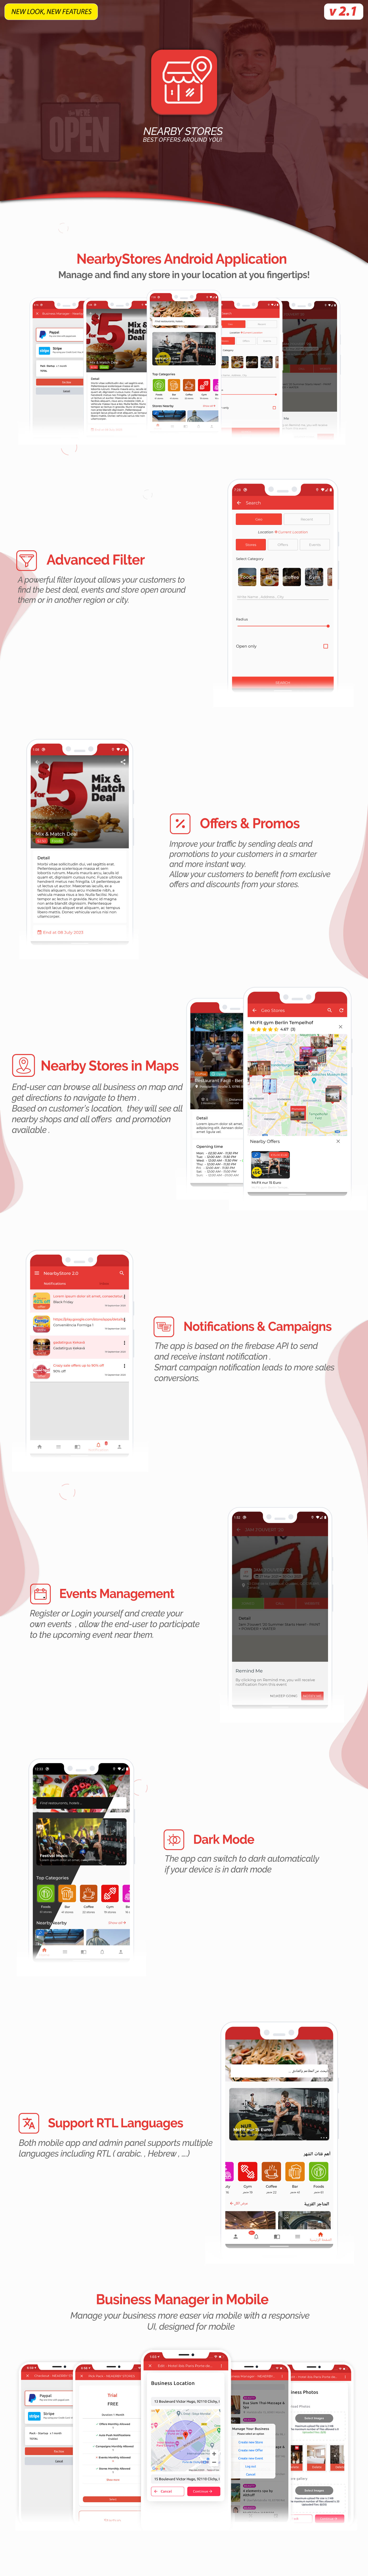 NearbyStores Android - Offers, Events, Multi-Purpose, Restaurant, Market - Subscription & WEB Panel - 2